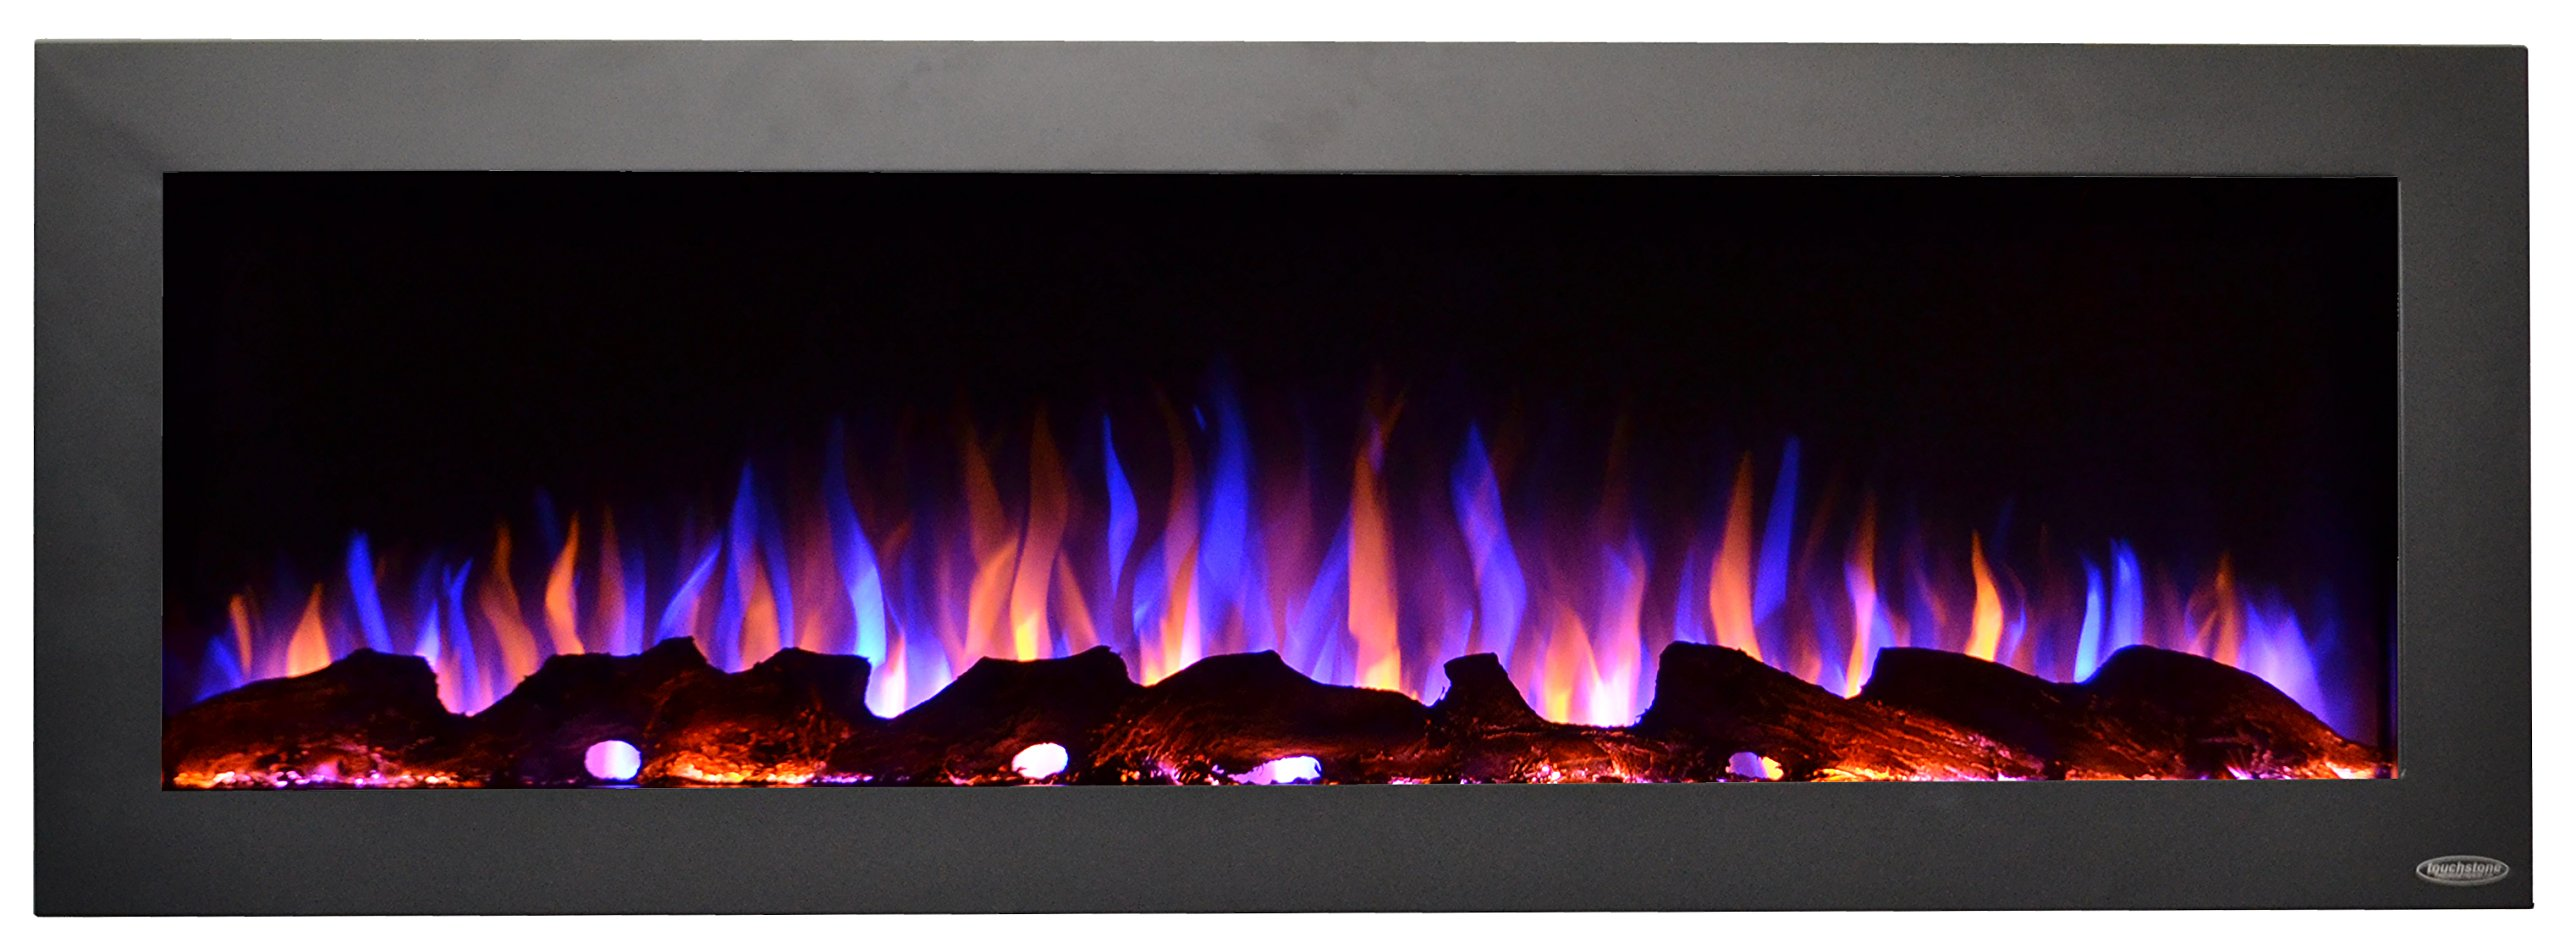 Touchstone 80017 Sideline Outdoor/Indoor 50'' No Heat Electric Fireplace, 50 inch wide, Black